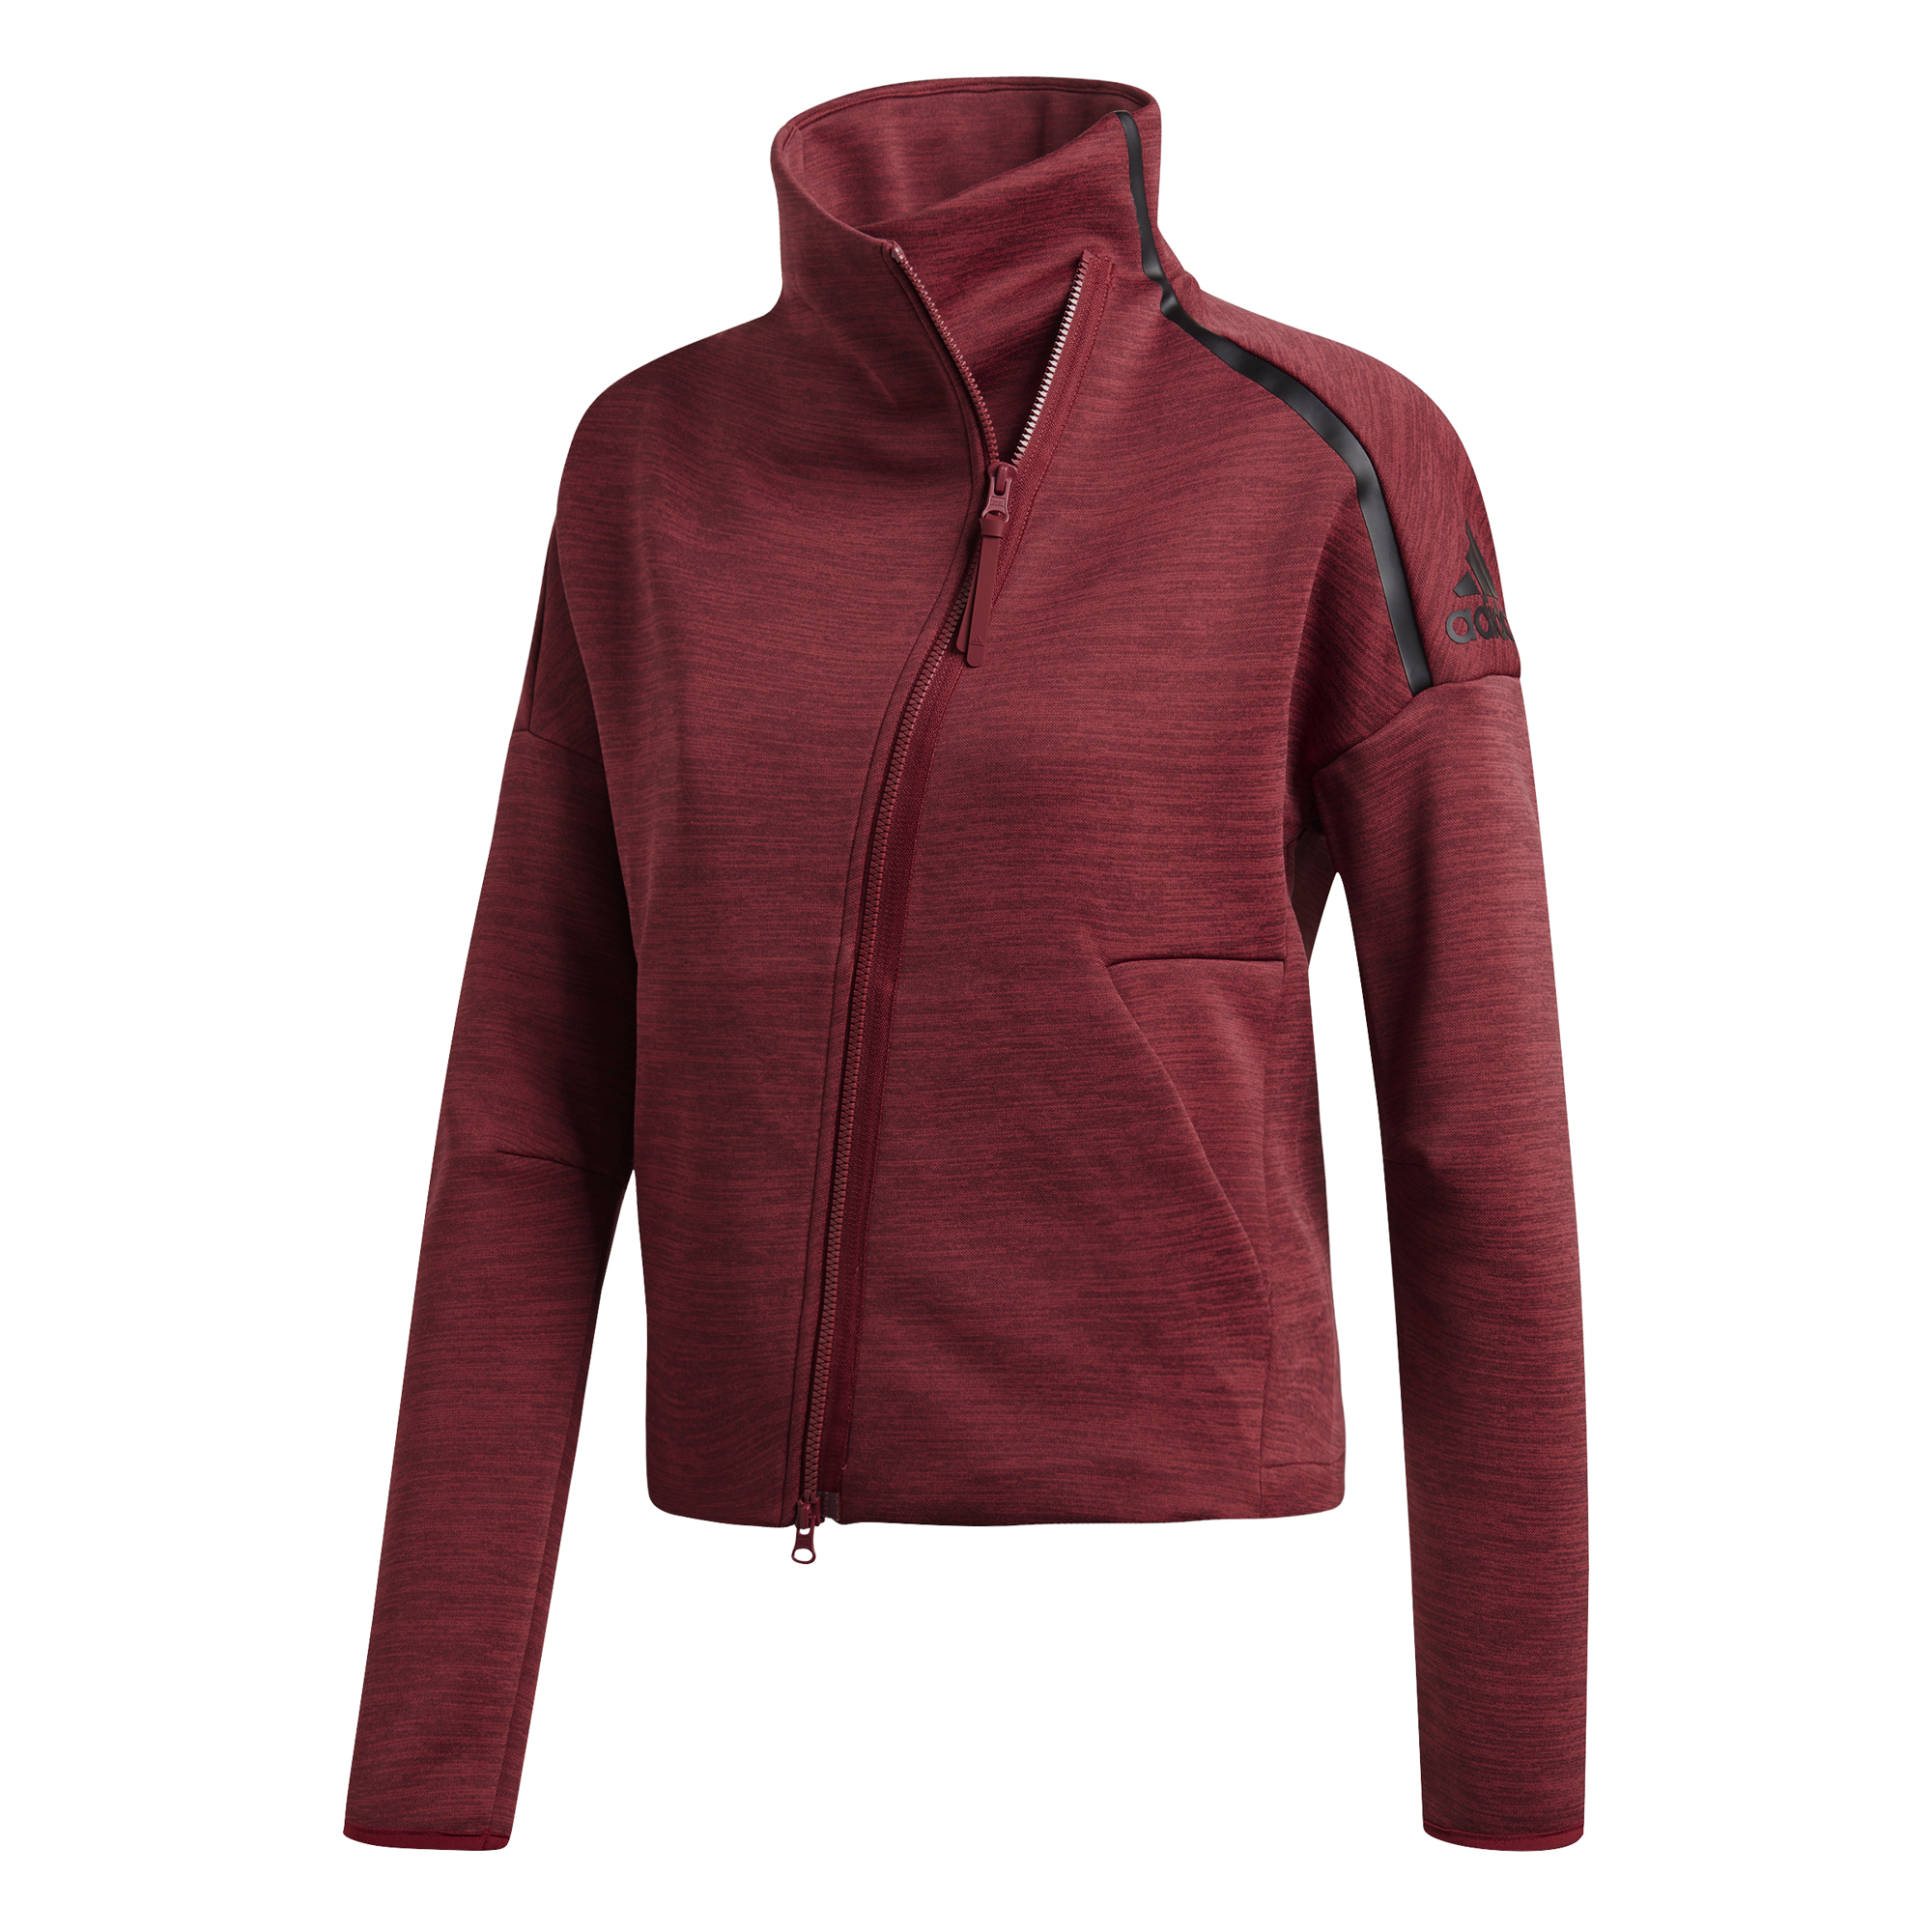 adidas Women's ZNE Cover up